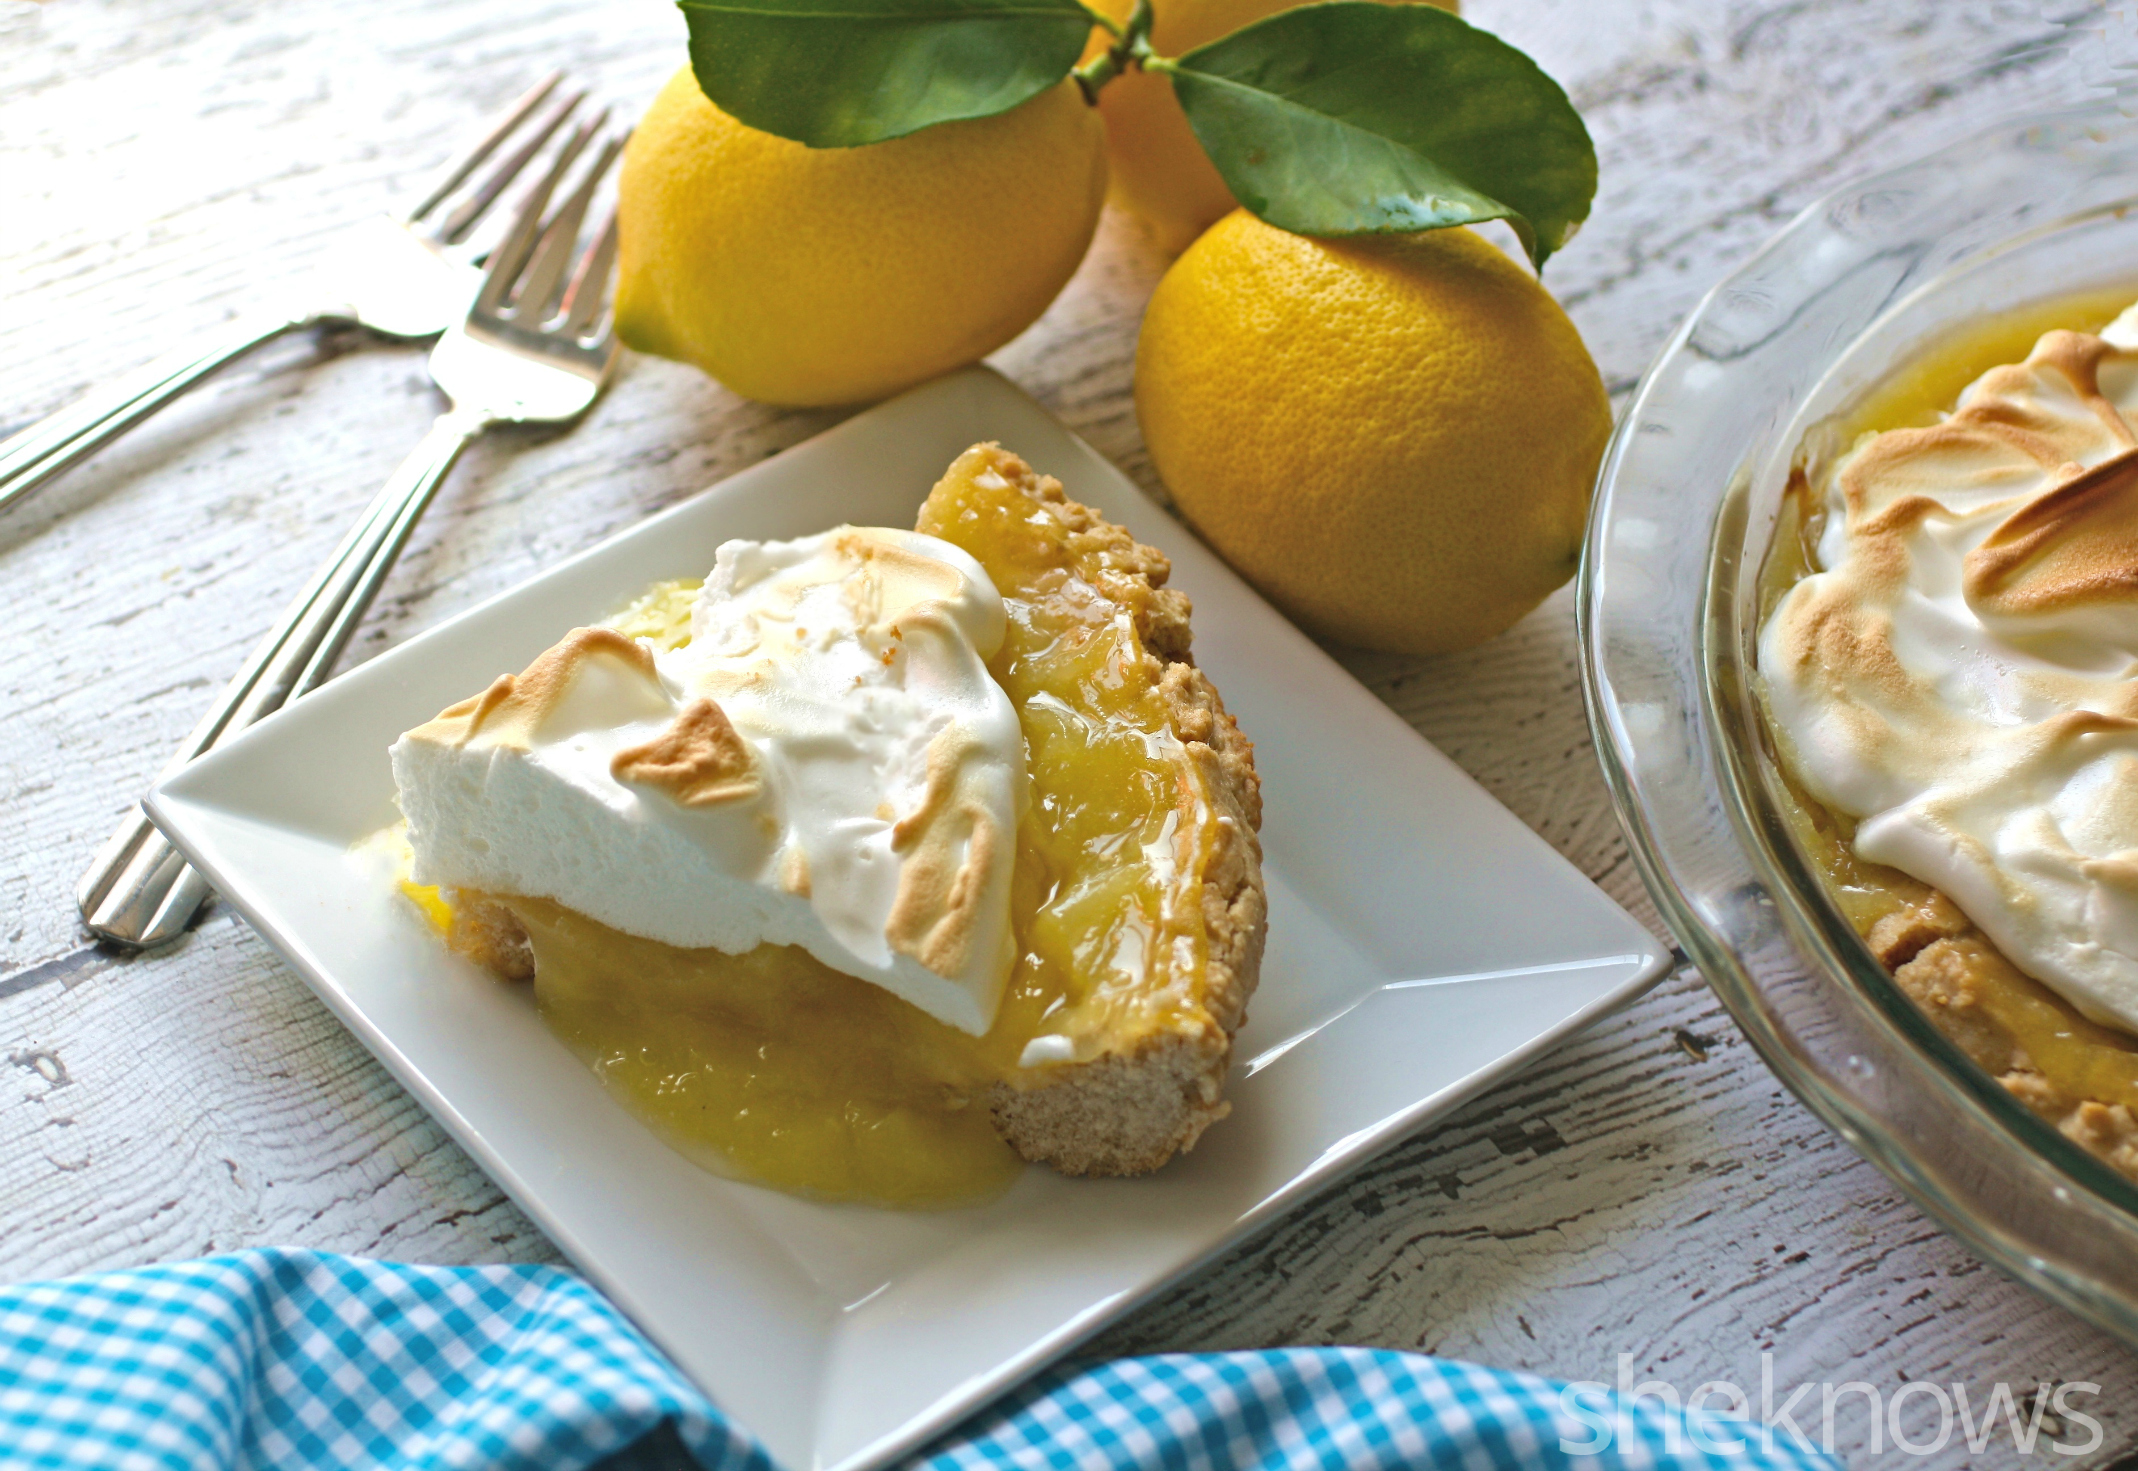 One pie of gluten-free lemon meringue pie with graham cracker crust will have you thinking of spring